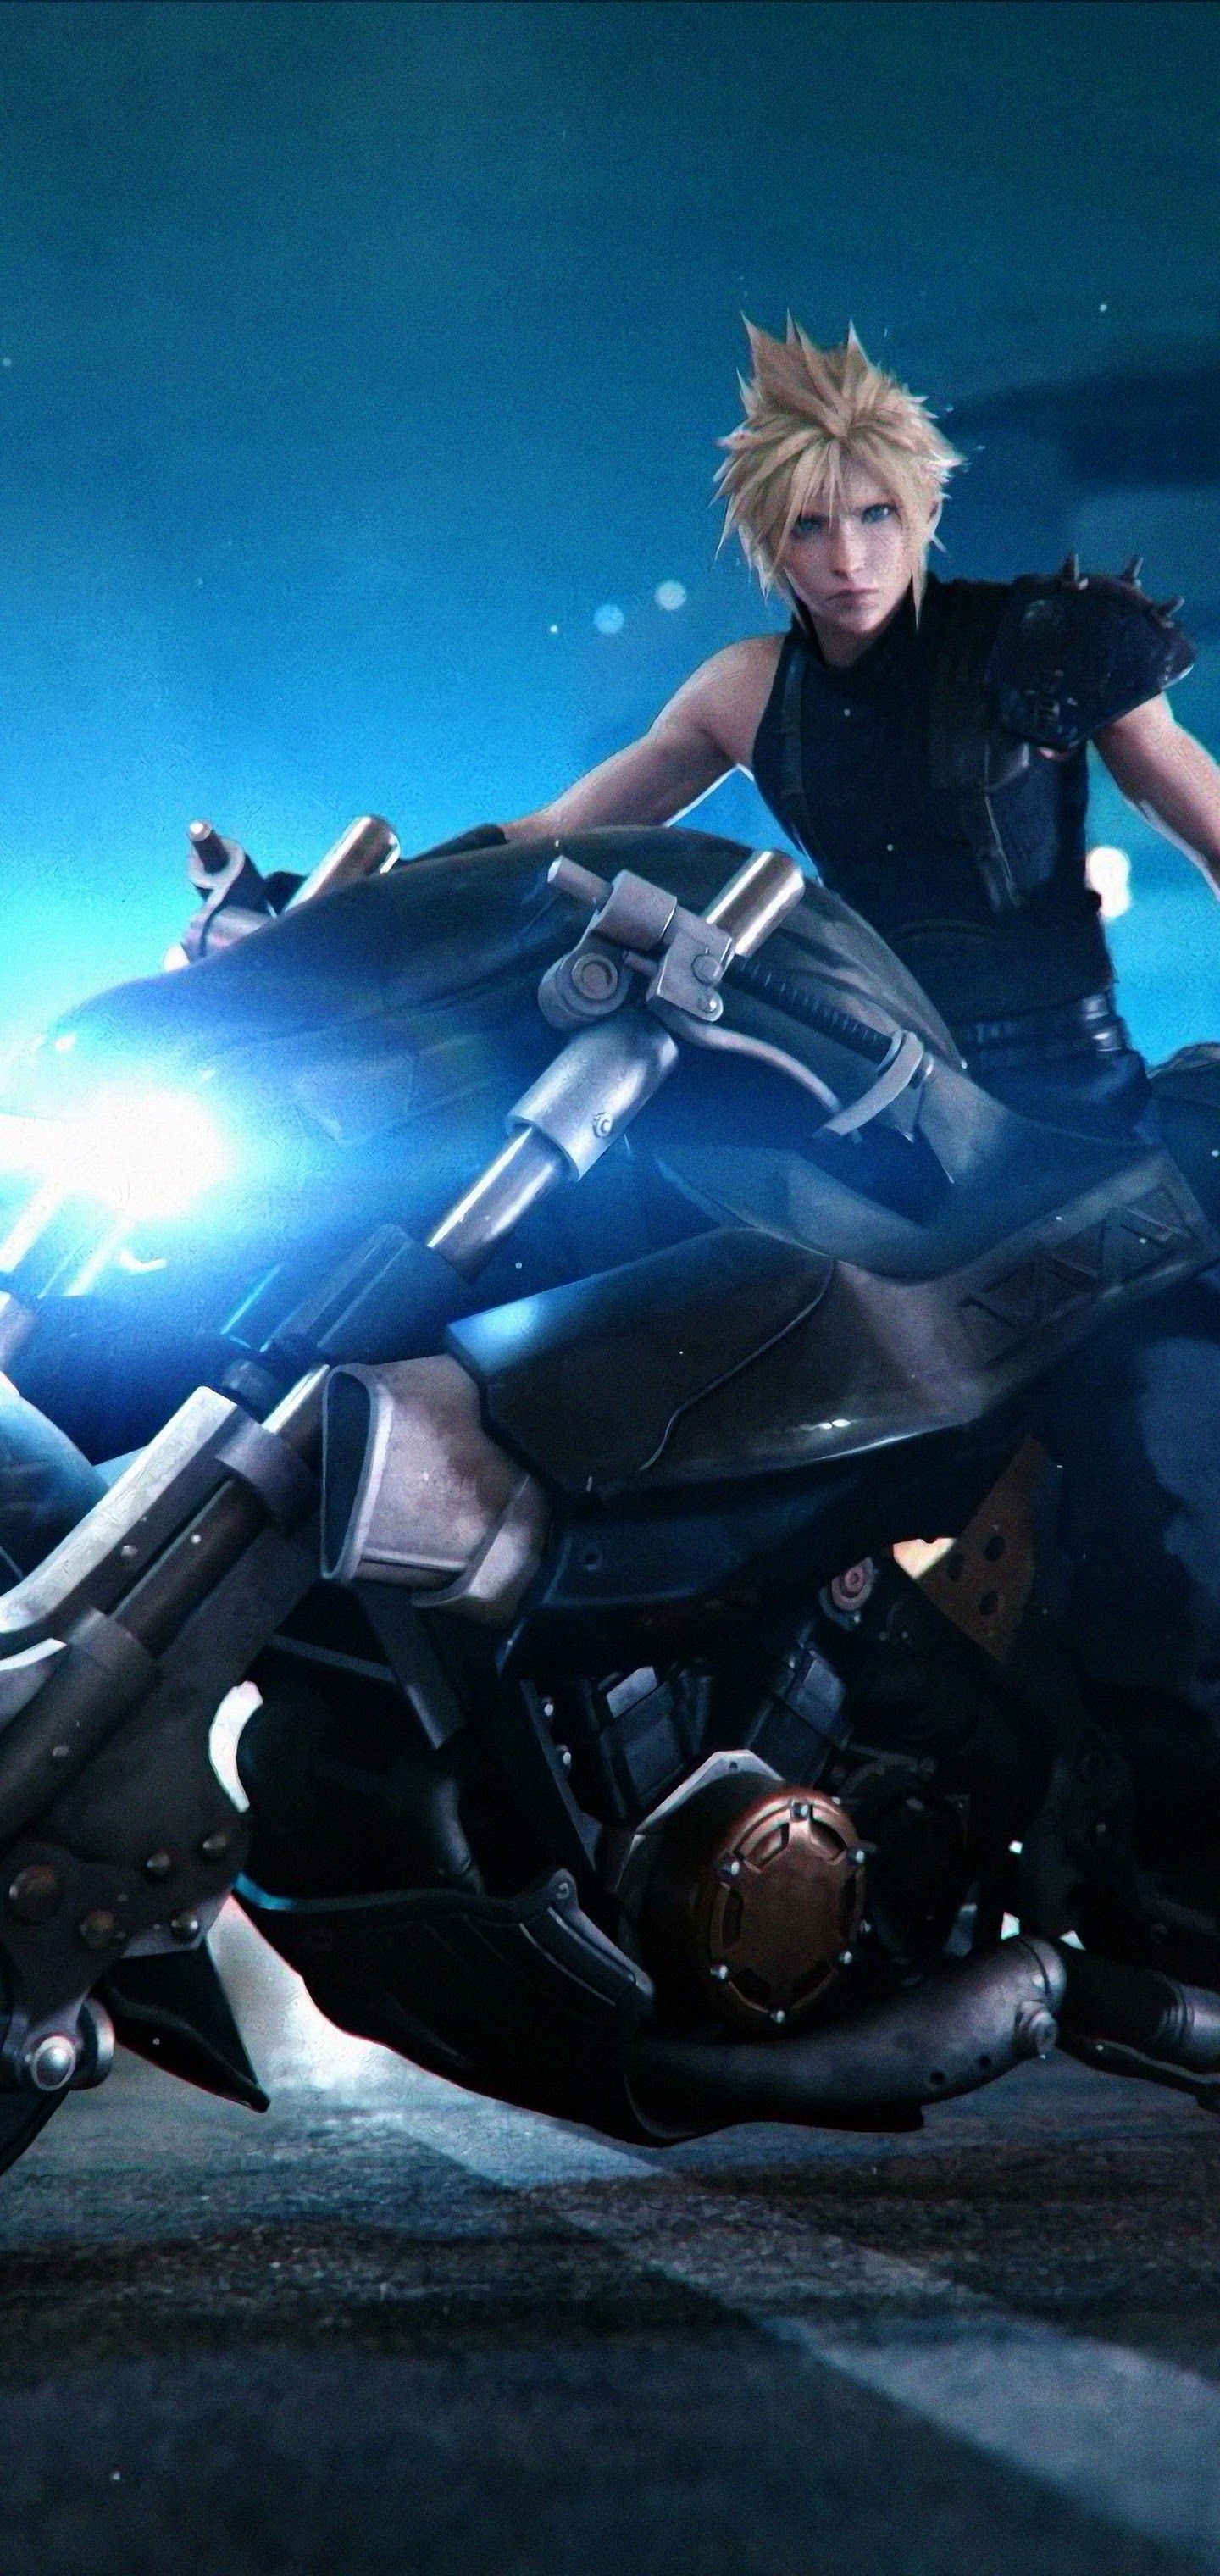 Cloud Strife Motorcycle Final Fantasy 7 Remake 4k Wallpaper 28